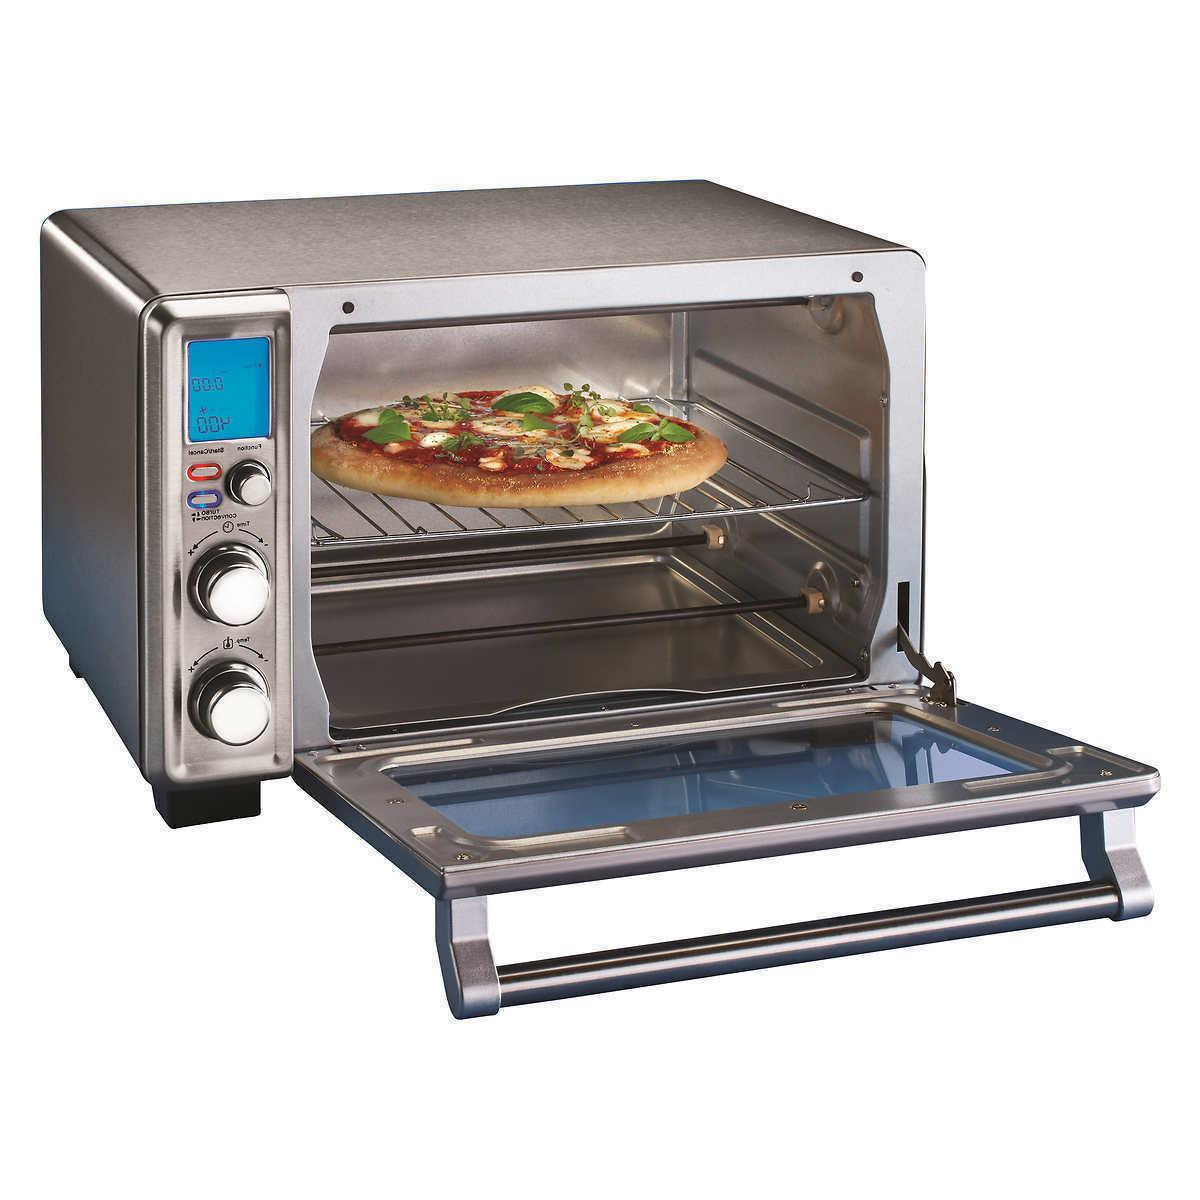 Oster Countertop Oven- 2104190 #1